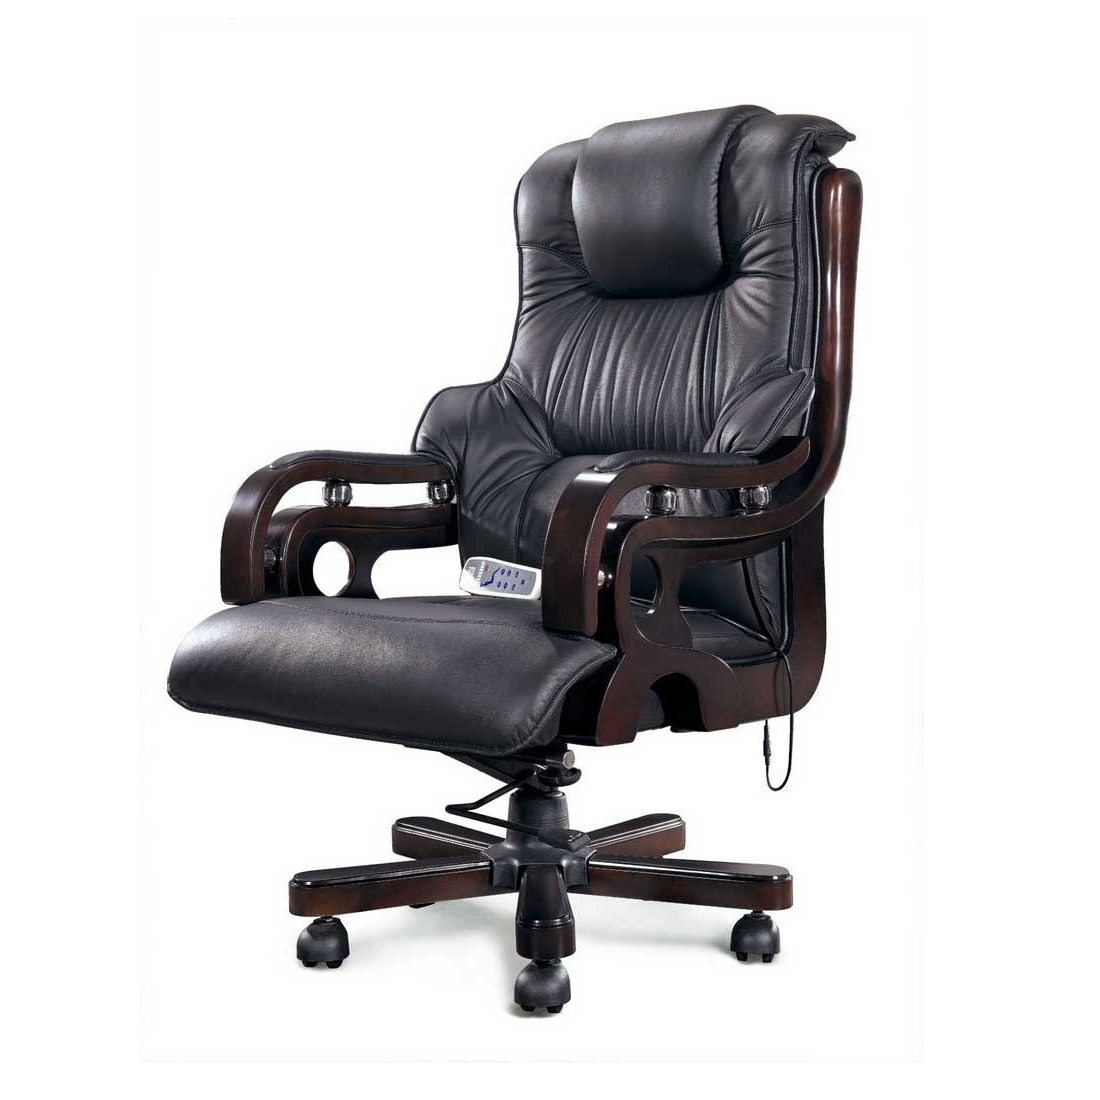 Crafts Home Intended For Expensive Executive Office Chairs (View 4 of 20)